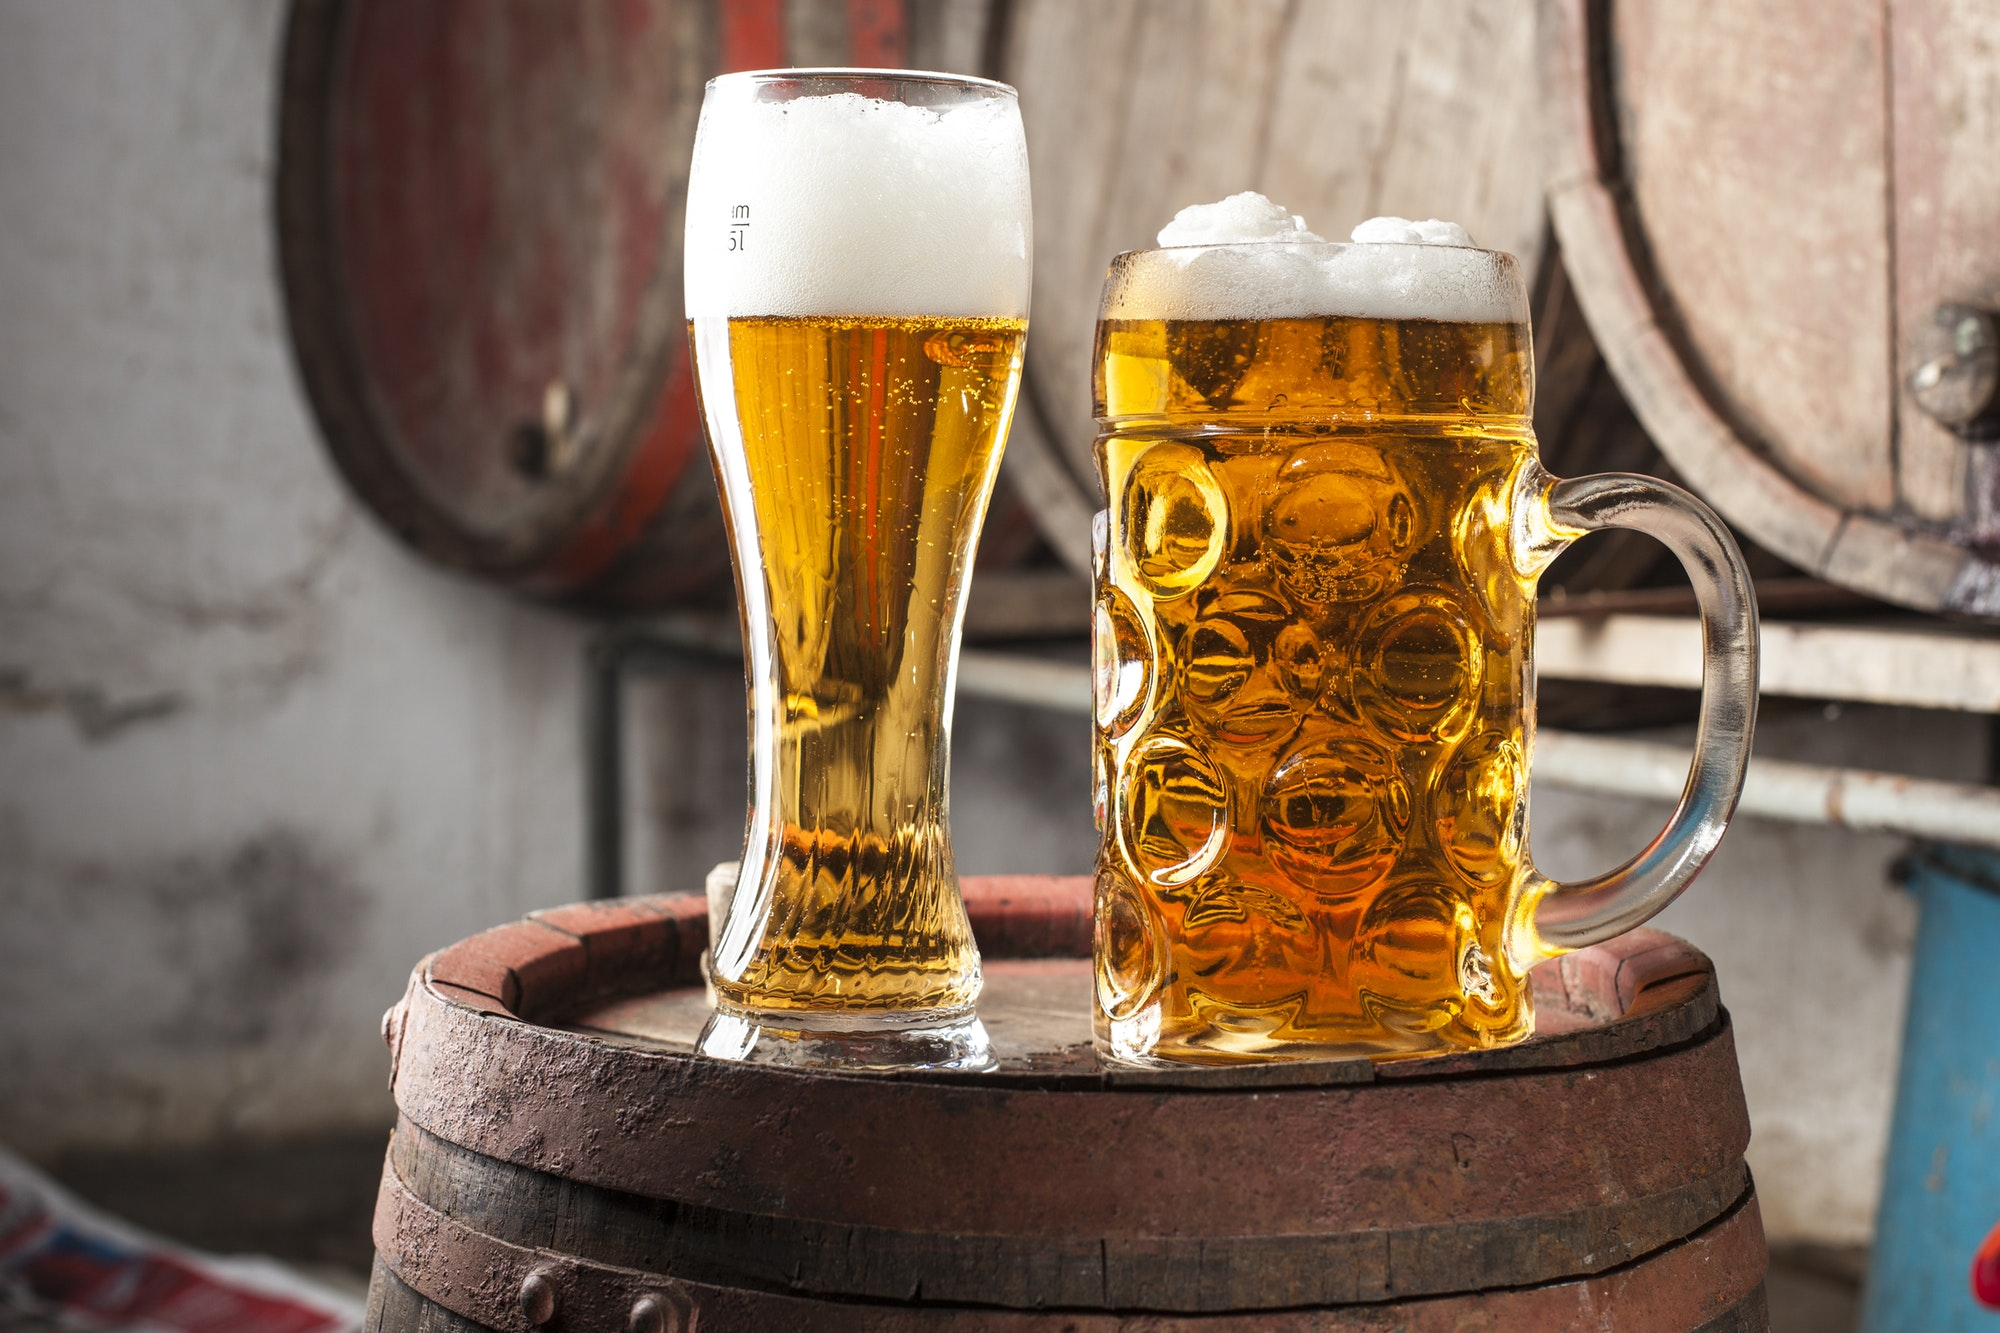 Two Beers alchohol